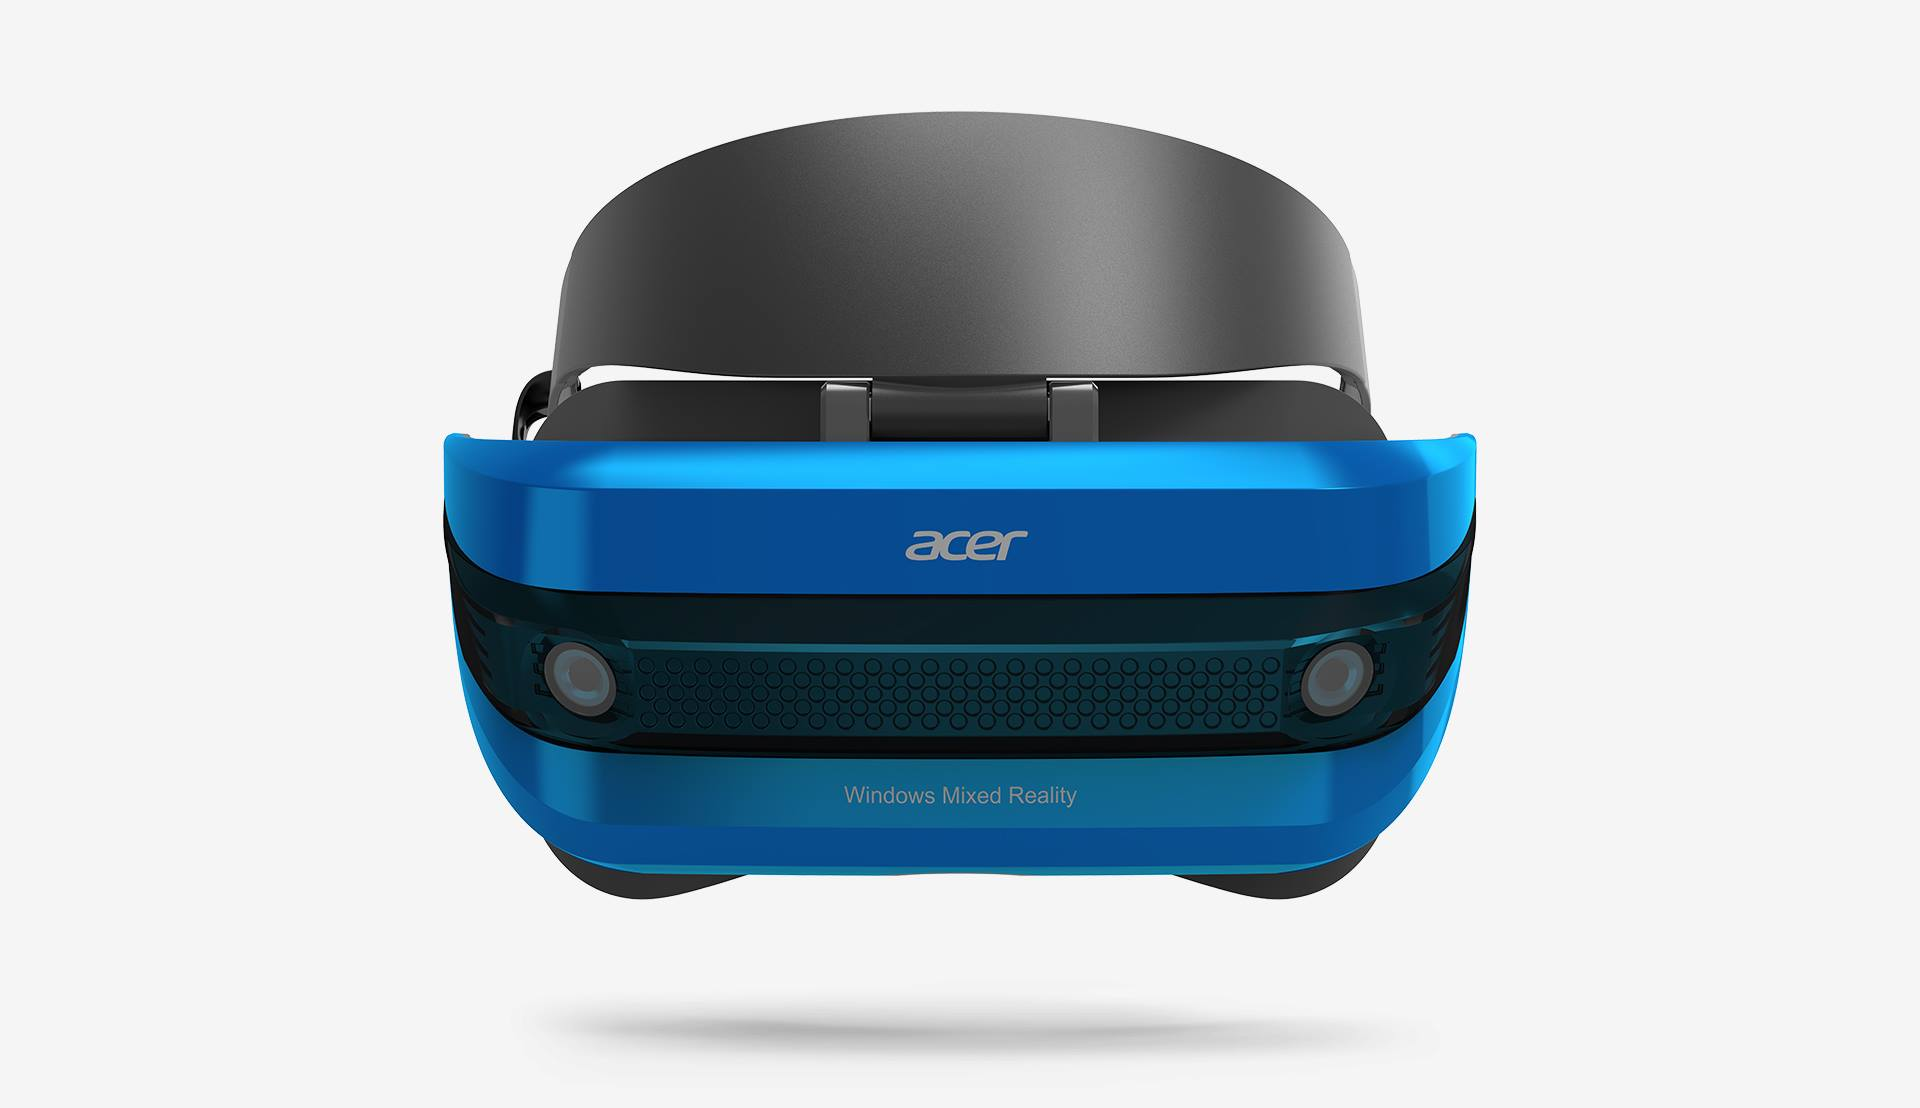 Acer Windows Mixed Reality HMD AH100 1 (5)